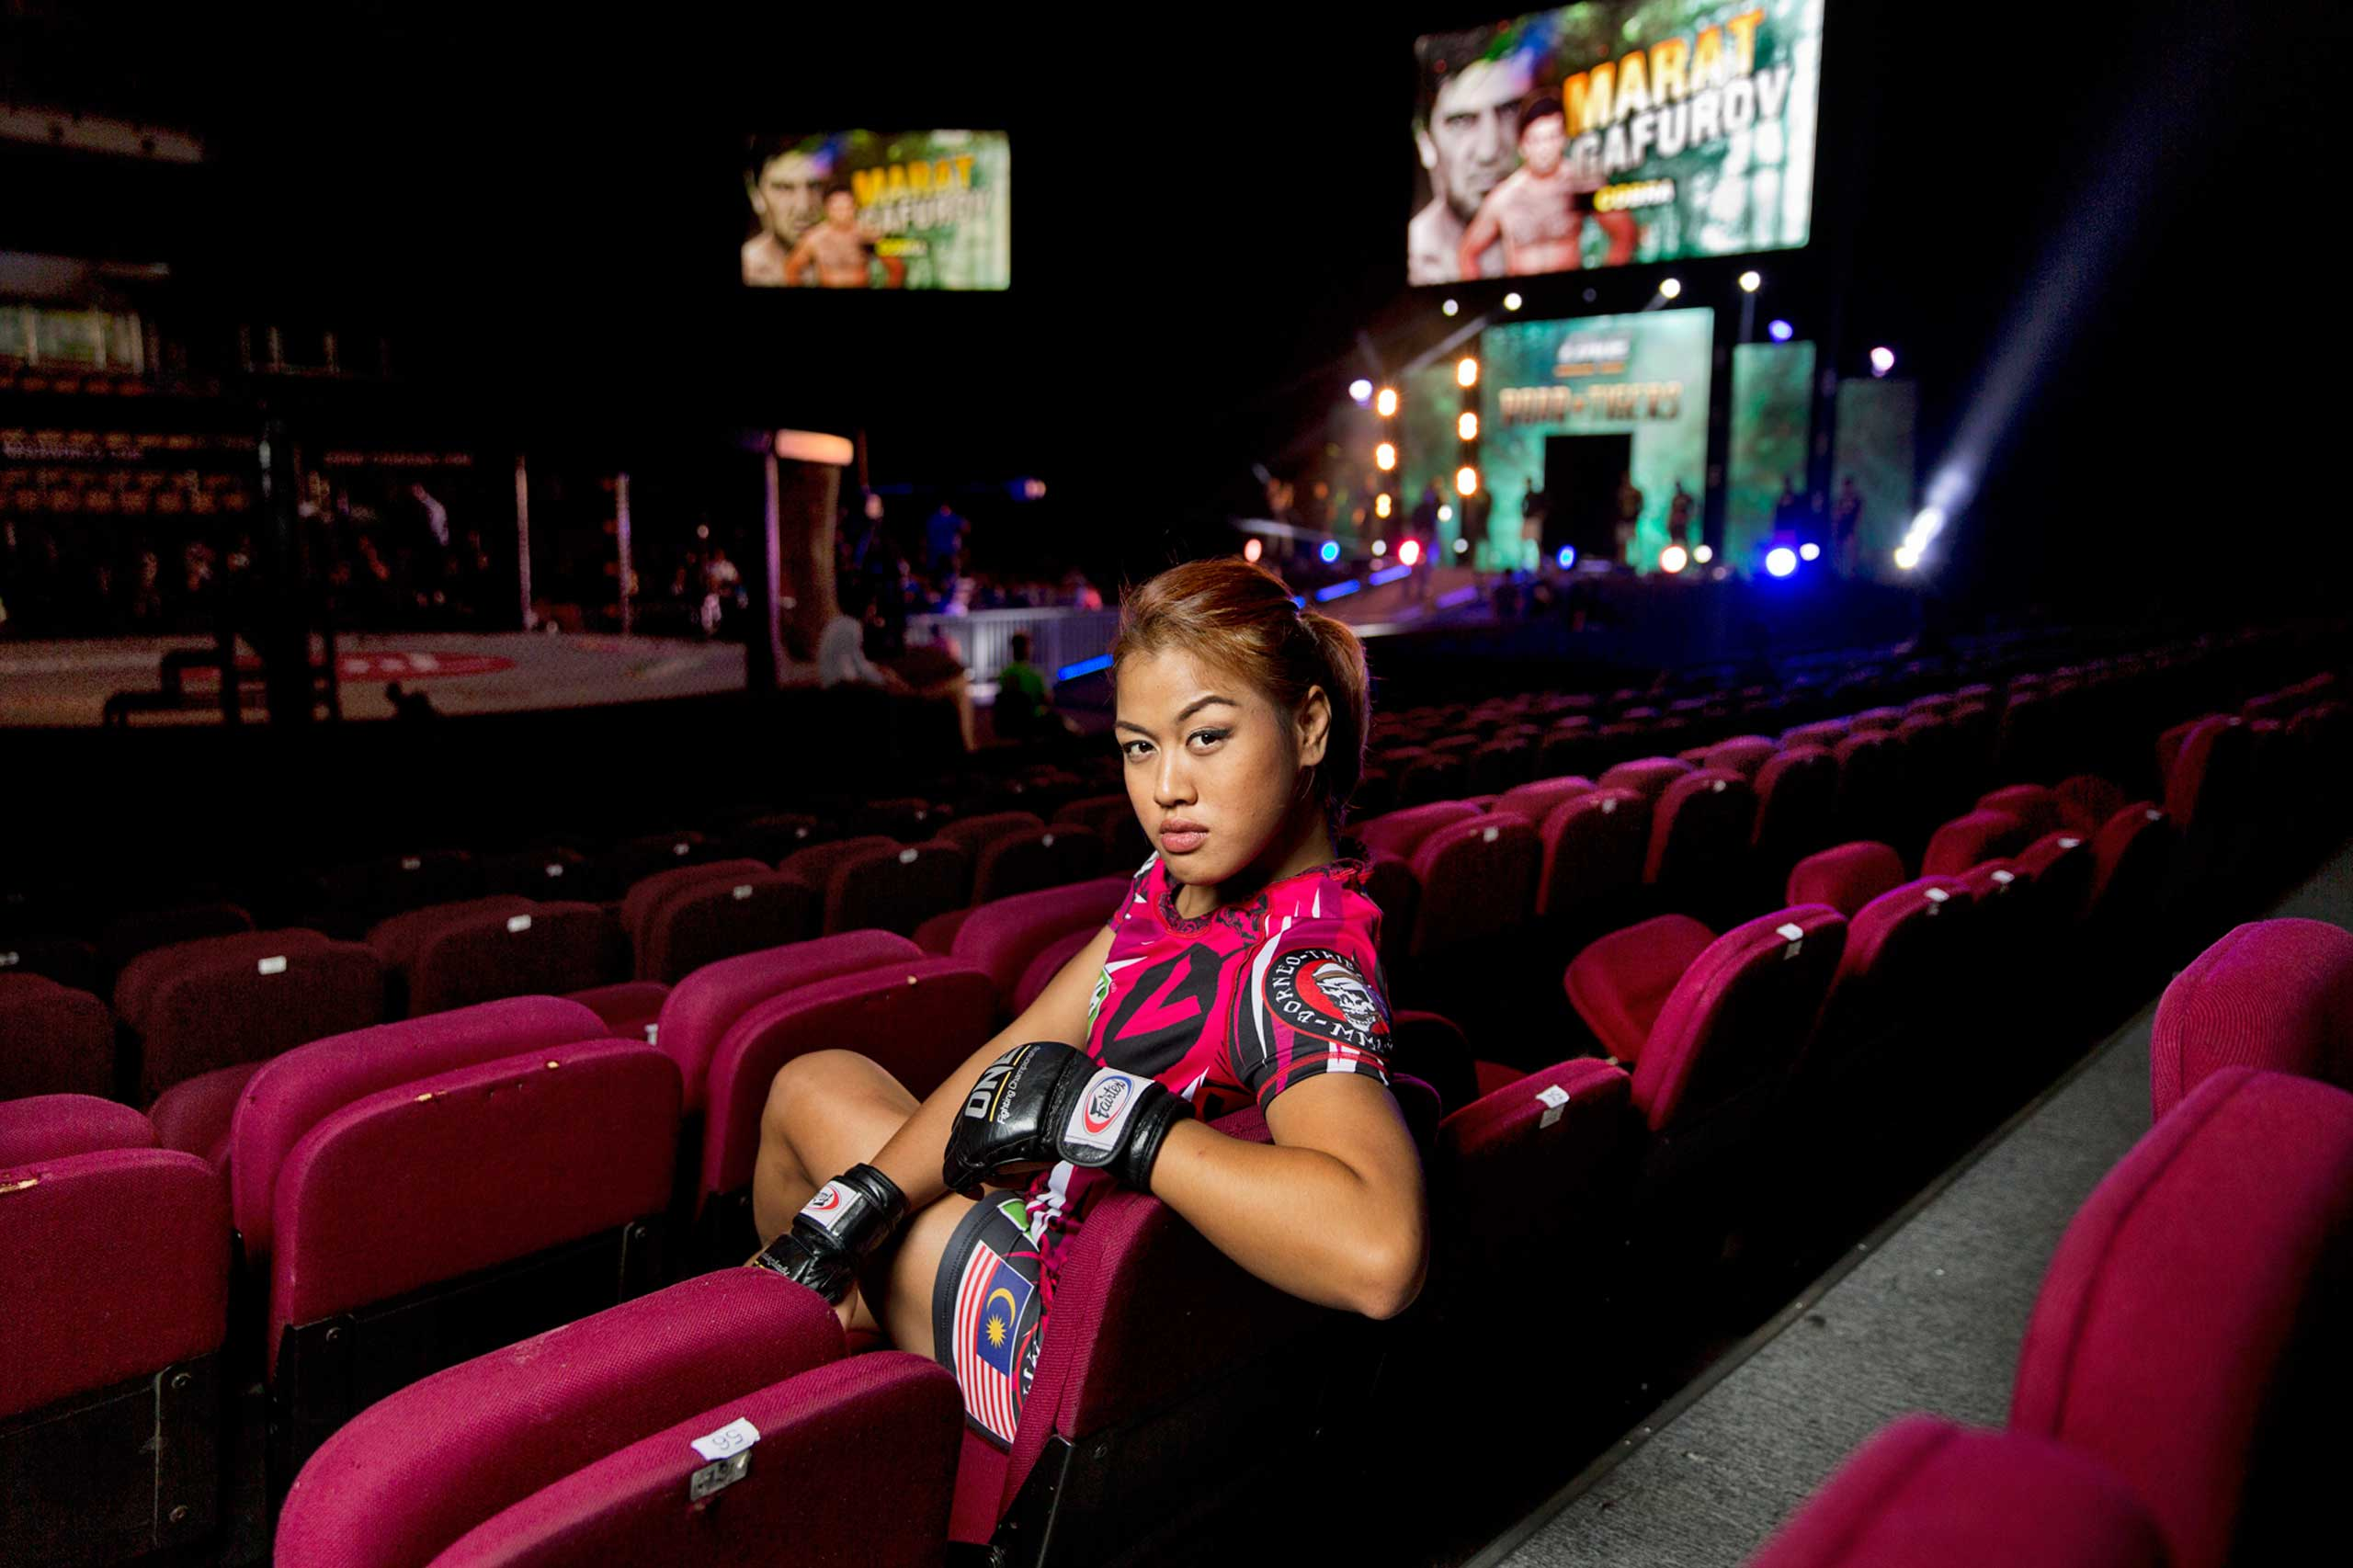 Mixed Martial Artist Ann Osman poses for a portrait before competing in the One Fighting Championship event on Oct. 16, 2014 in Kuala Lumpur, Malaysia.